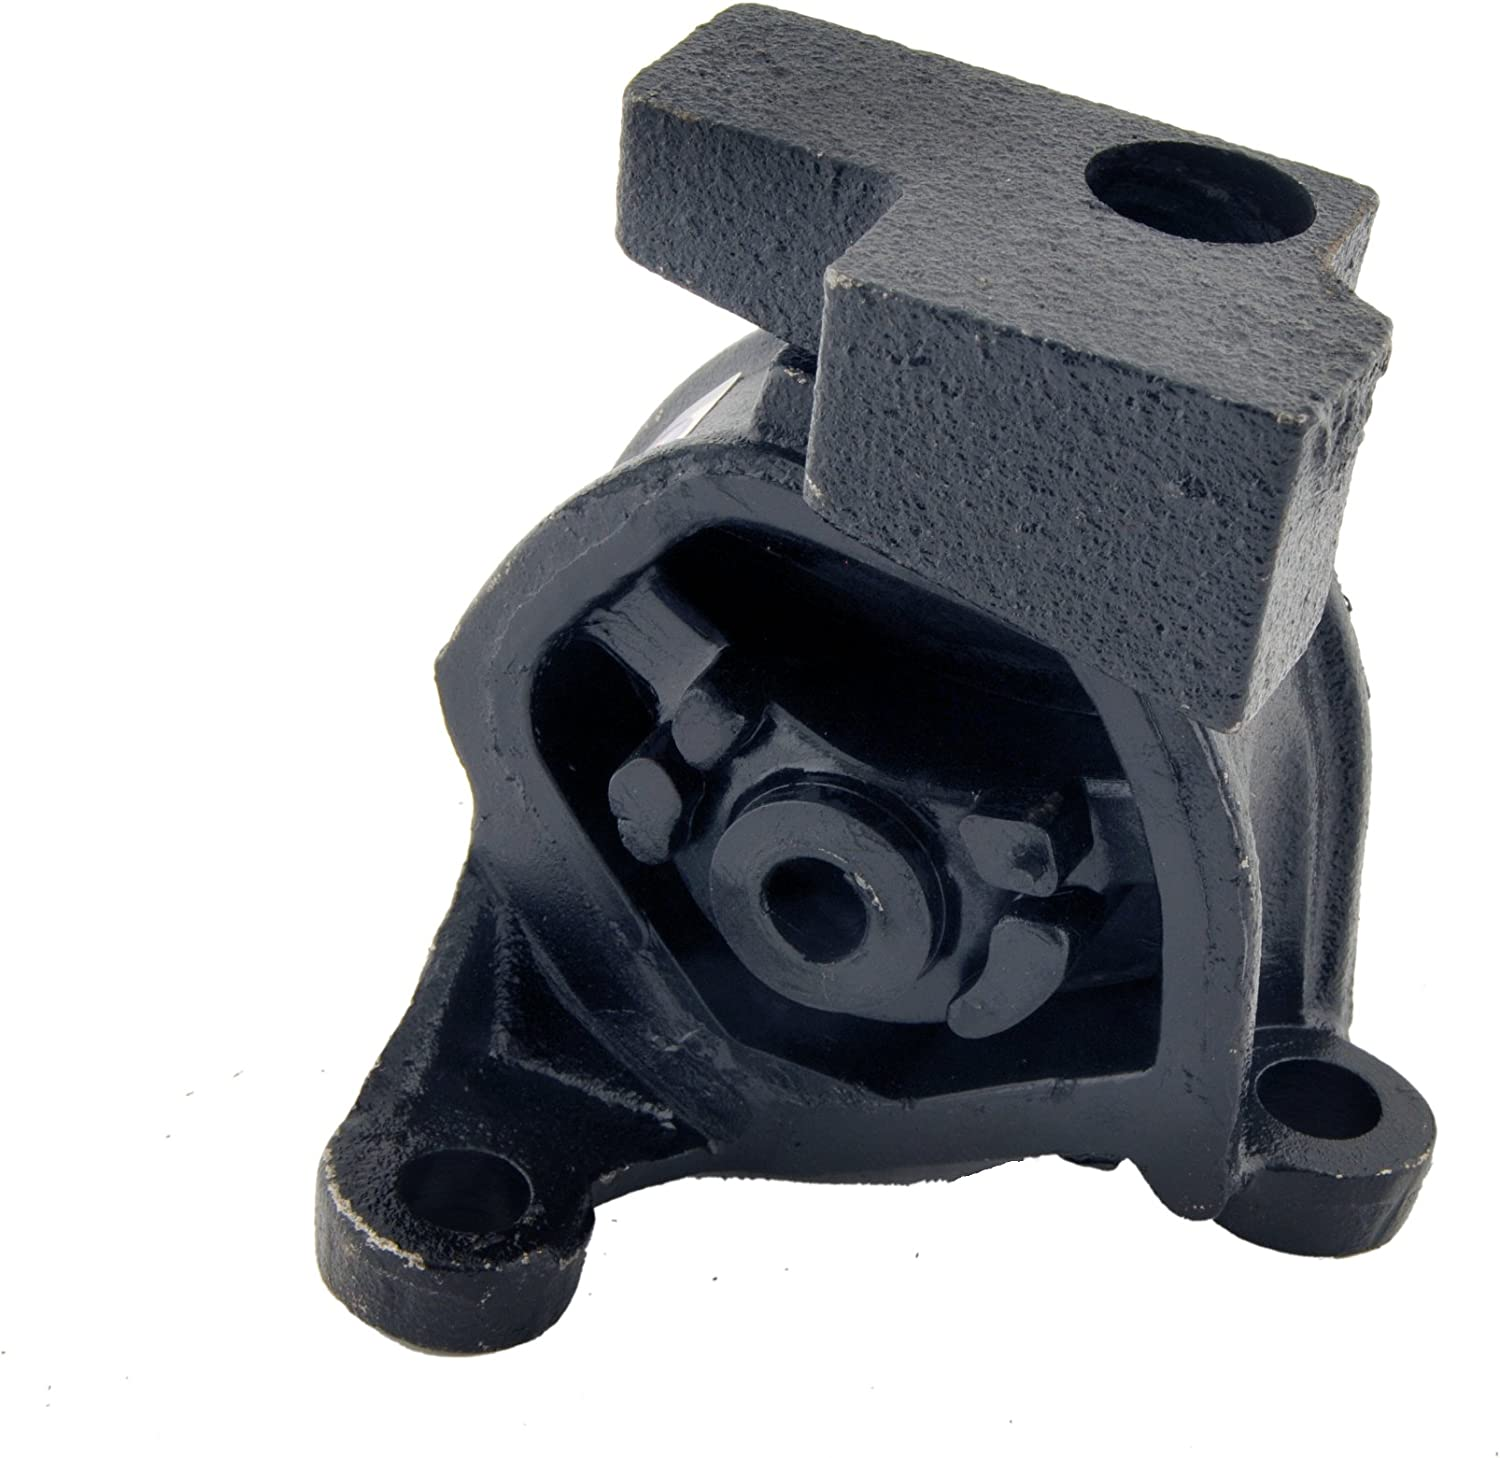 MTC 9630//50805-SP0-305 Transmission Mount 50805-SP0-305 MTC 9630